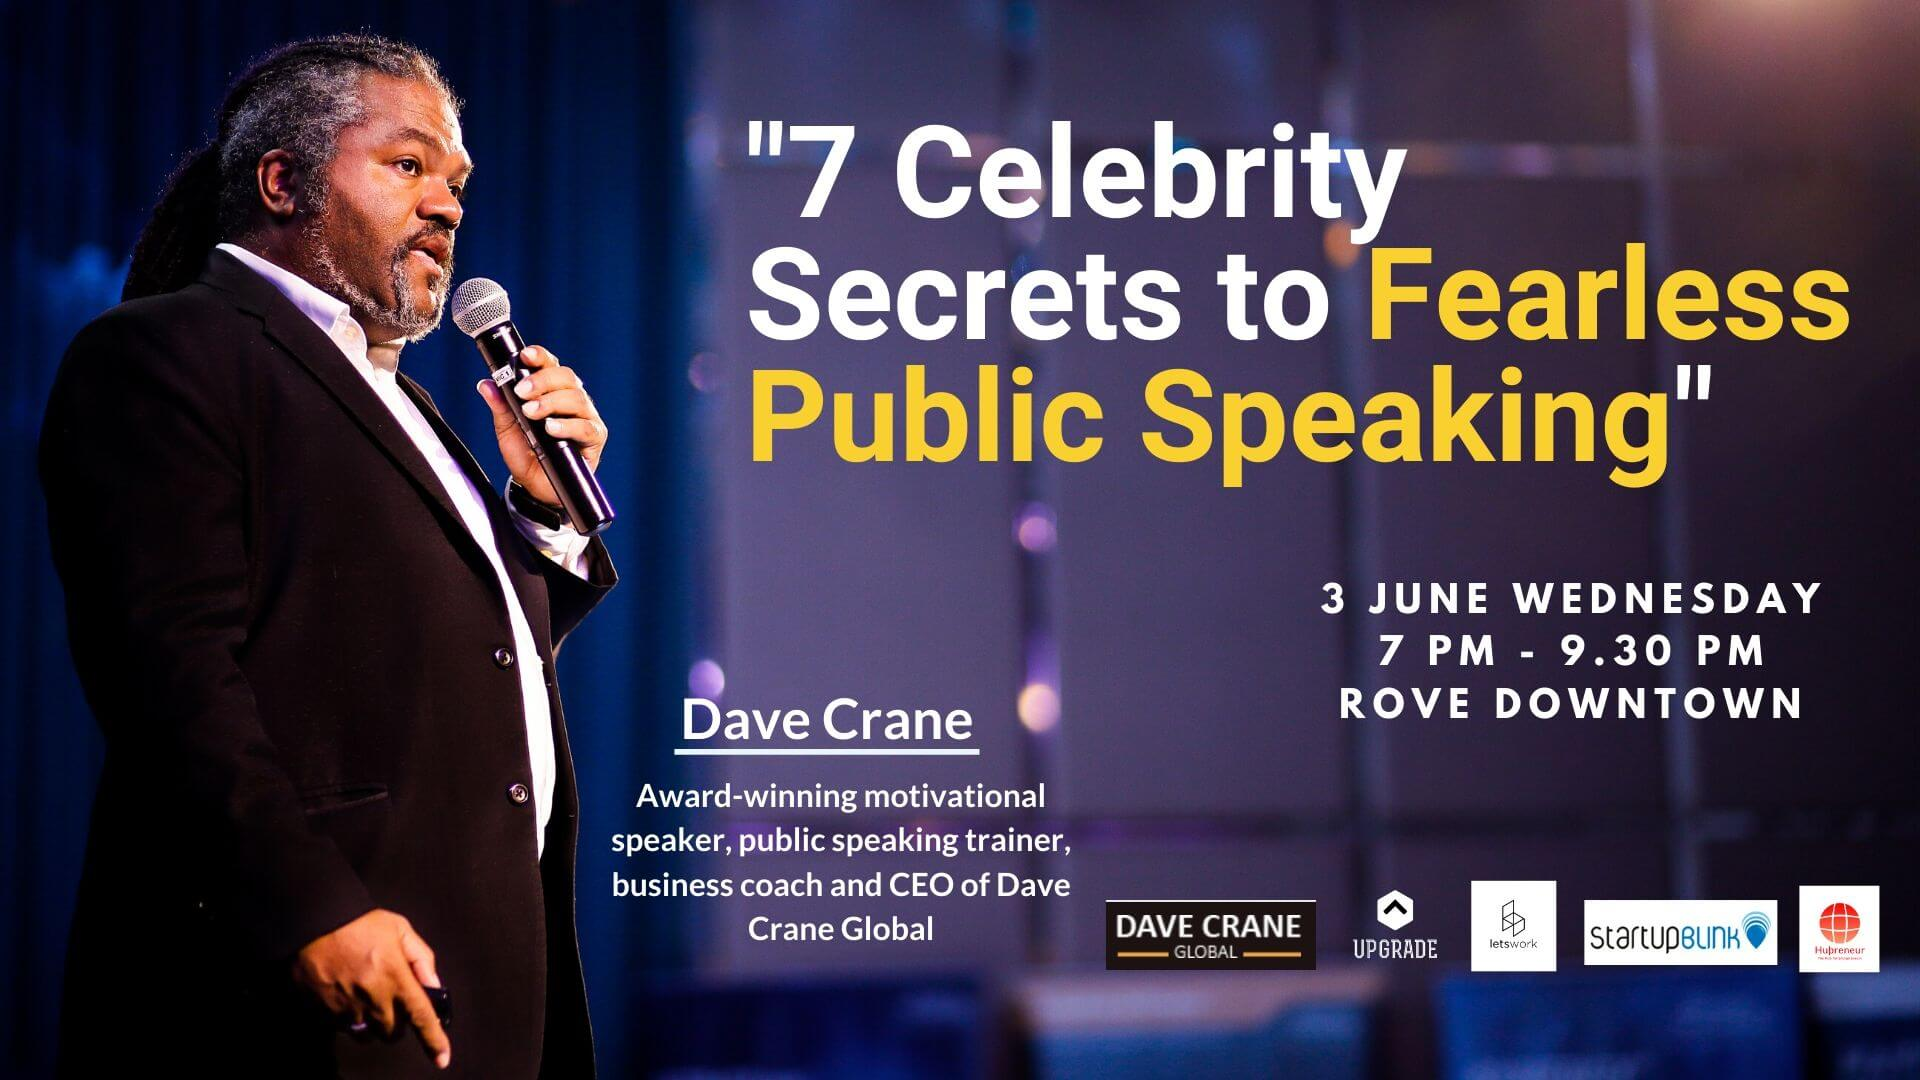 7 Celebrity Secrets to Fearless Public Speaking